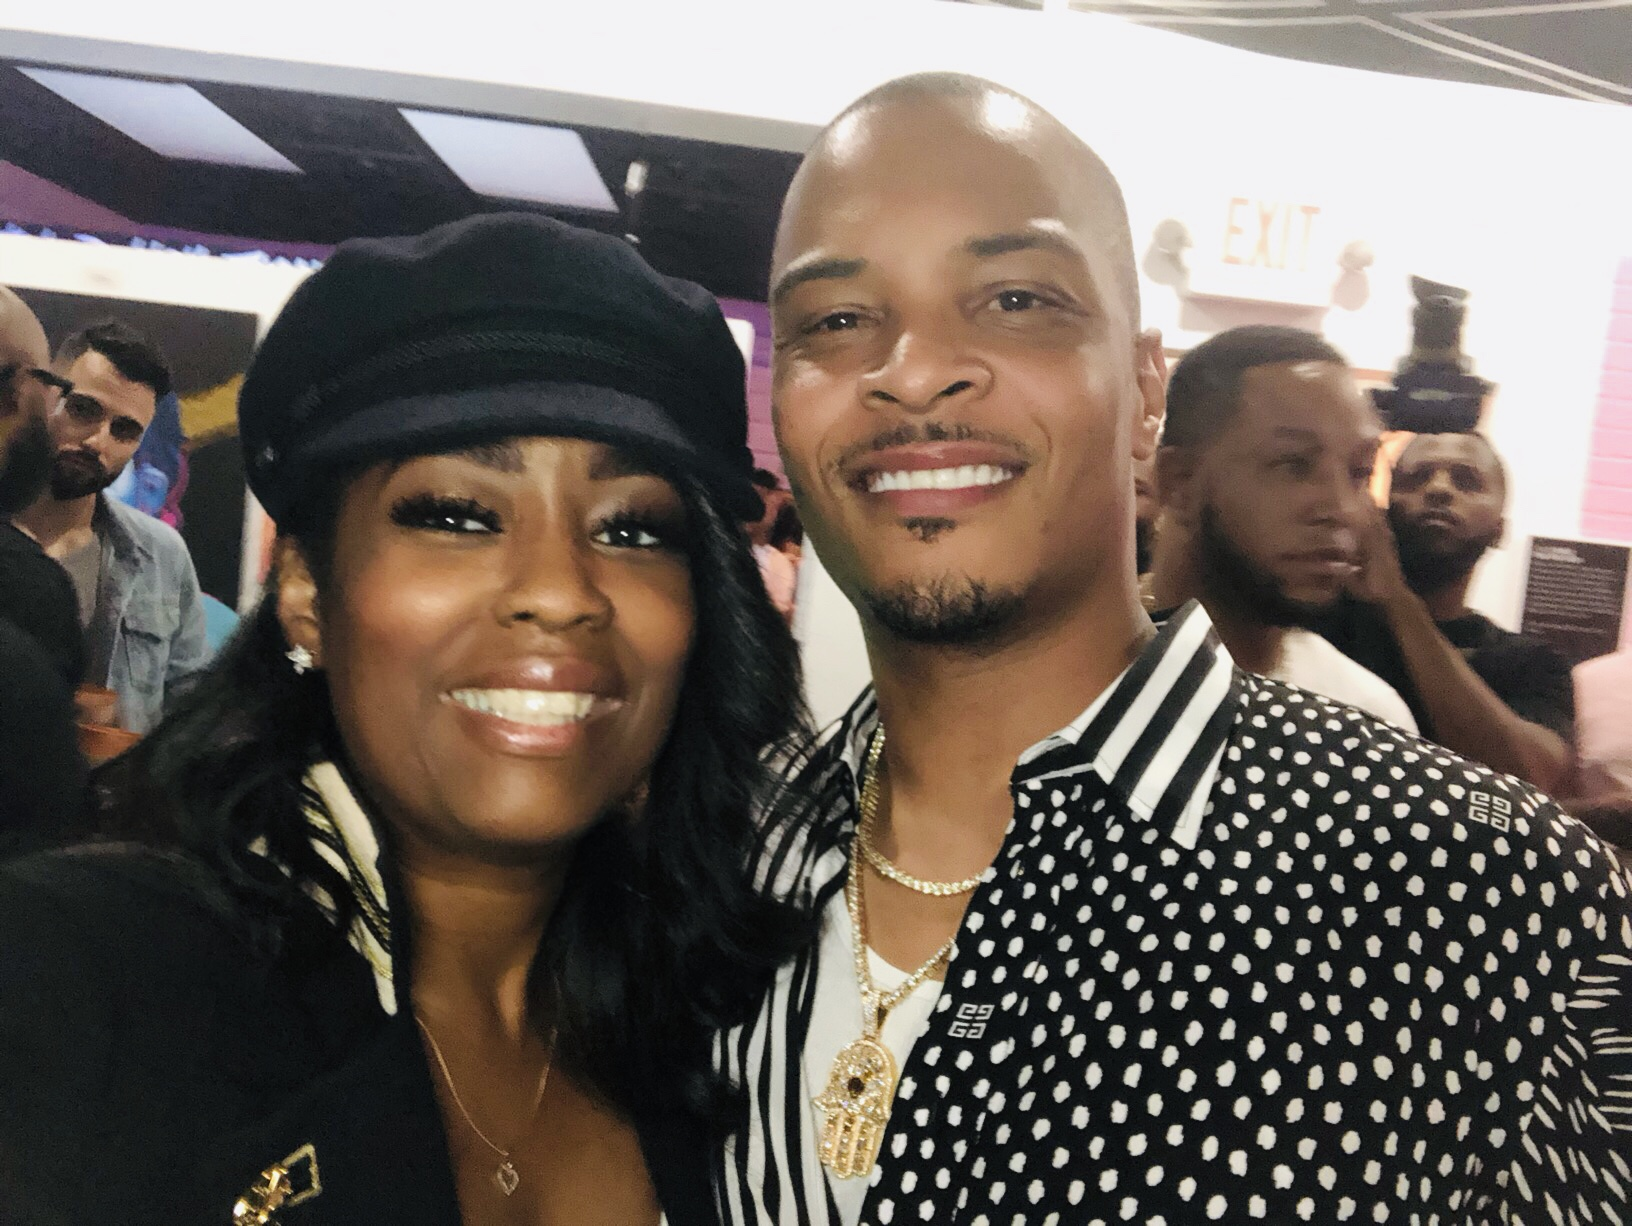 Rapper T.I.'s Private Album Listening Party At Trap Music Museum